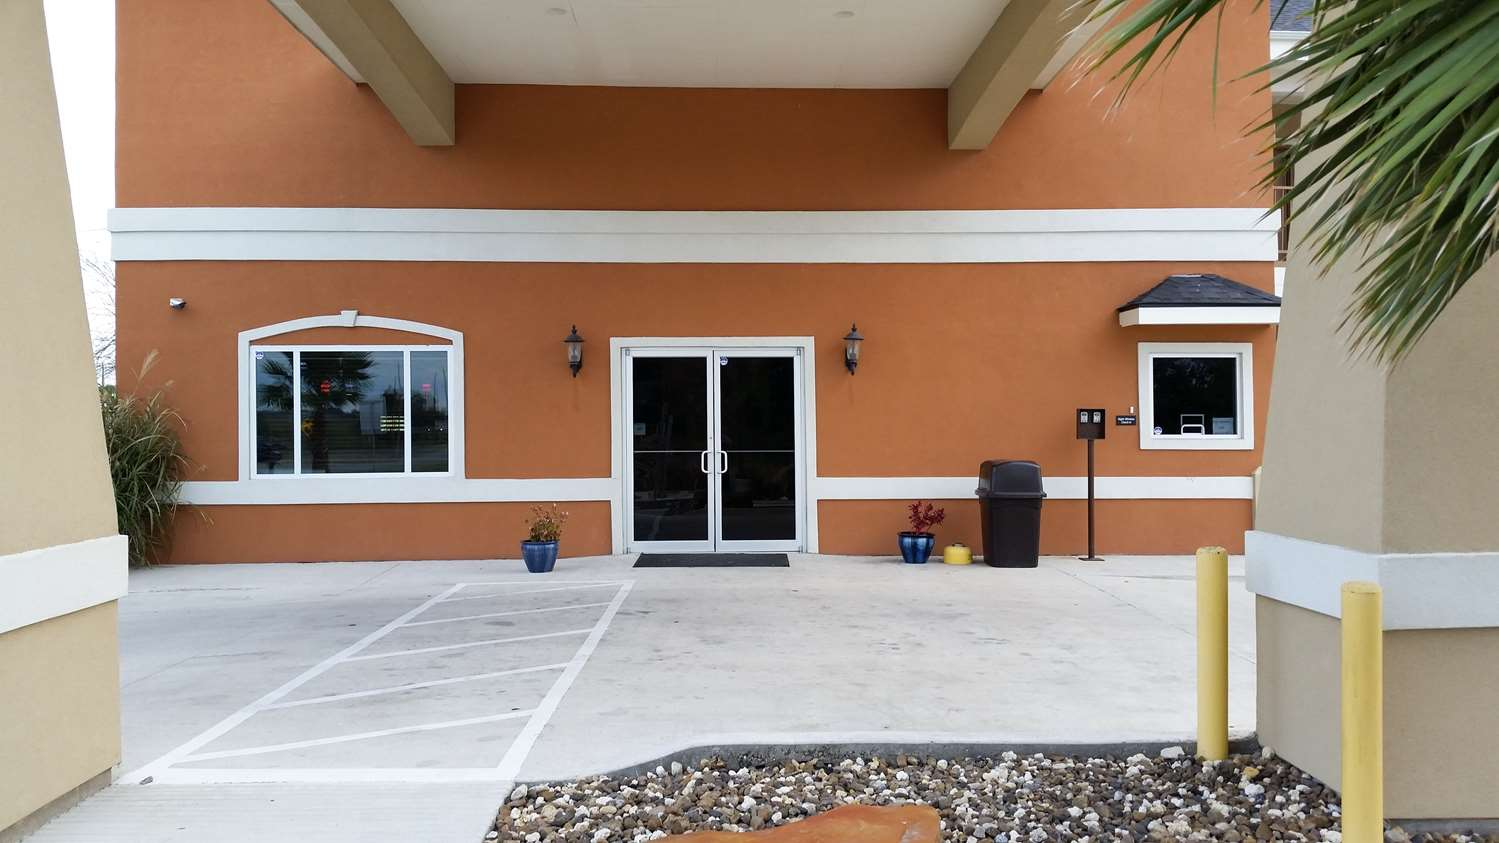 Exterior View Studio 6 Extended Stay Hotel Beeville